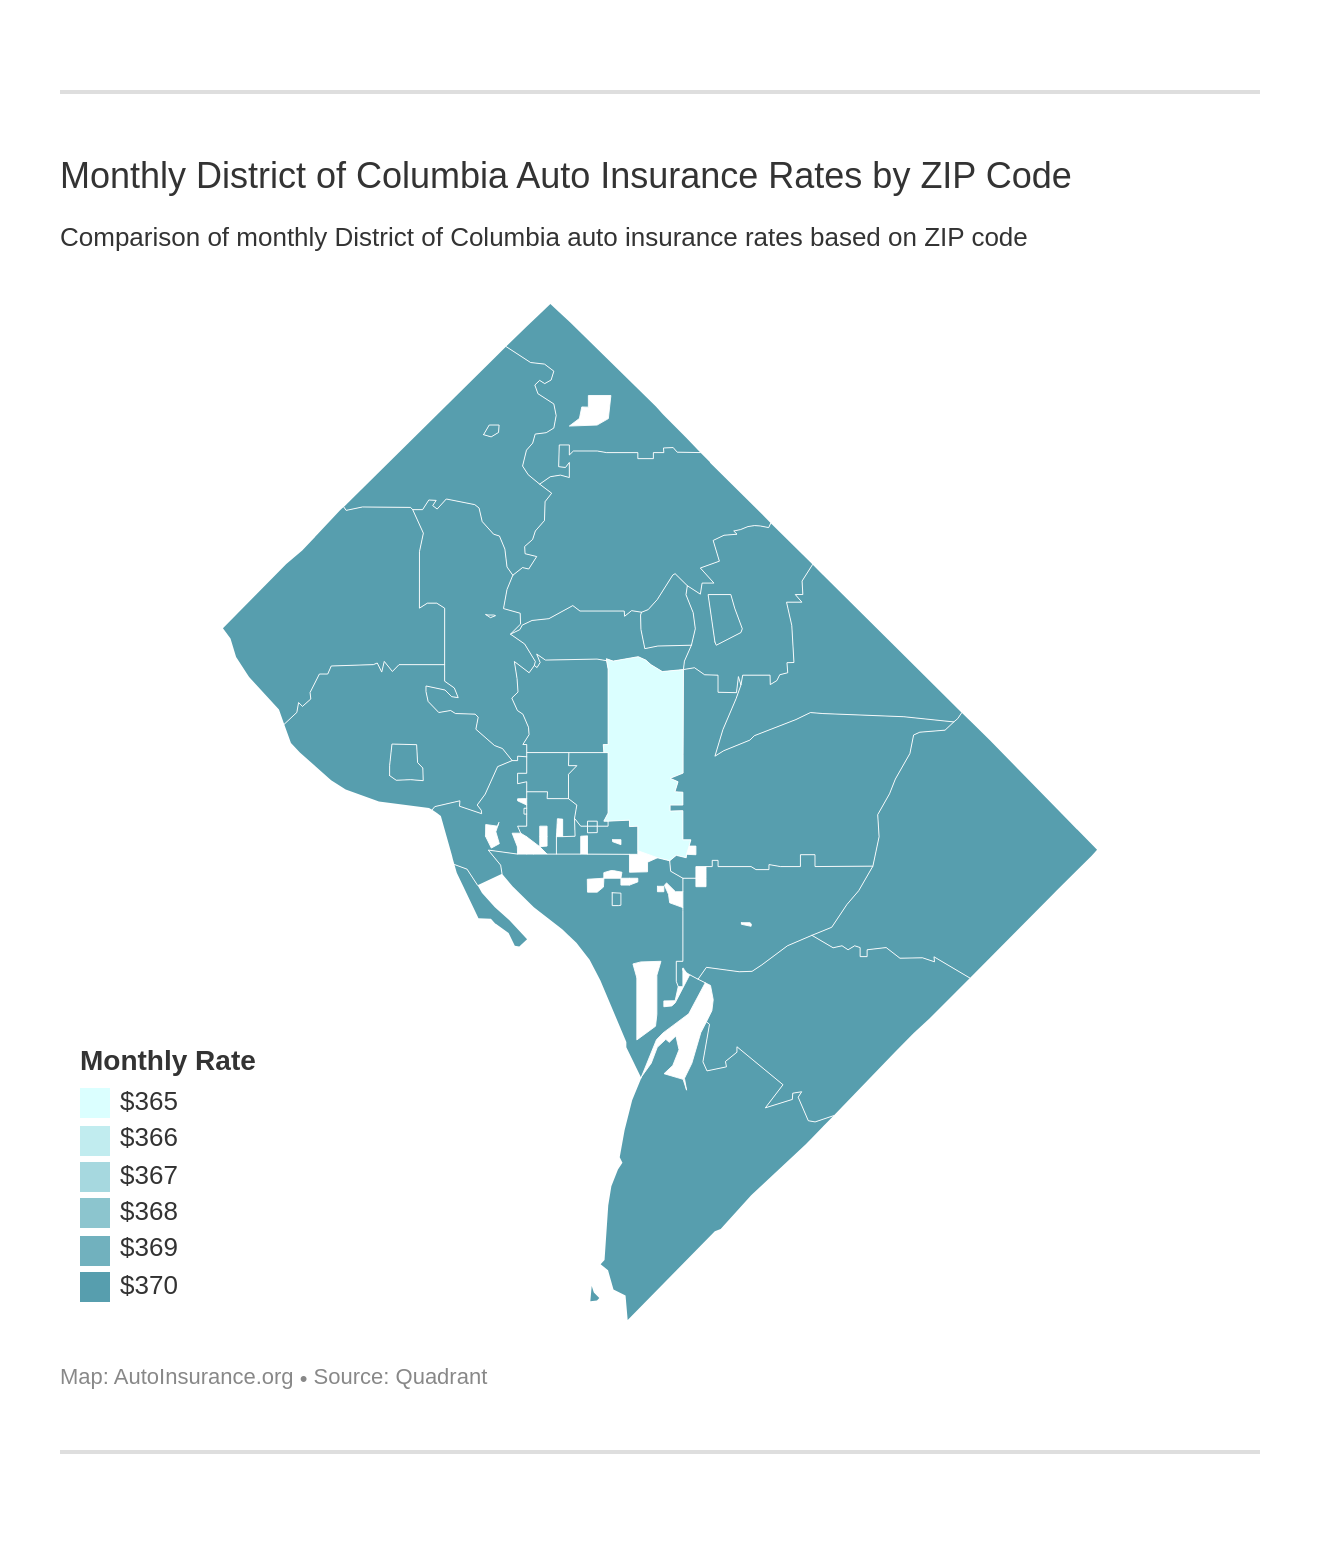 Monthly District of Columbia Auto Insurance Rates by ZIP Code